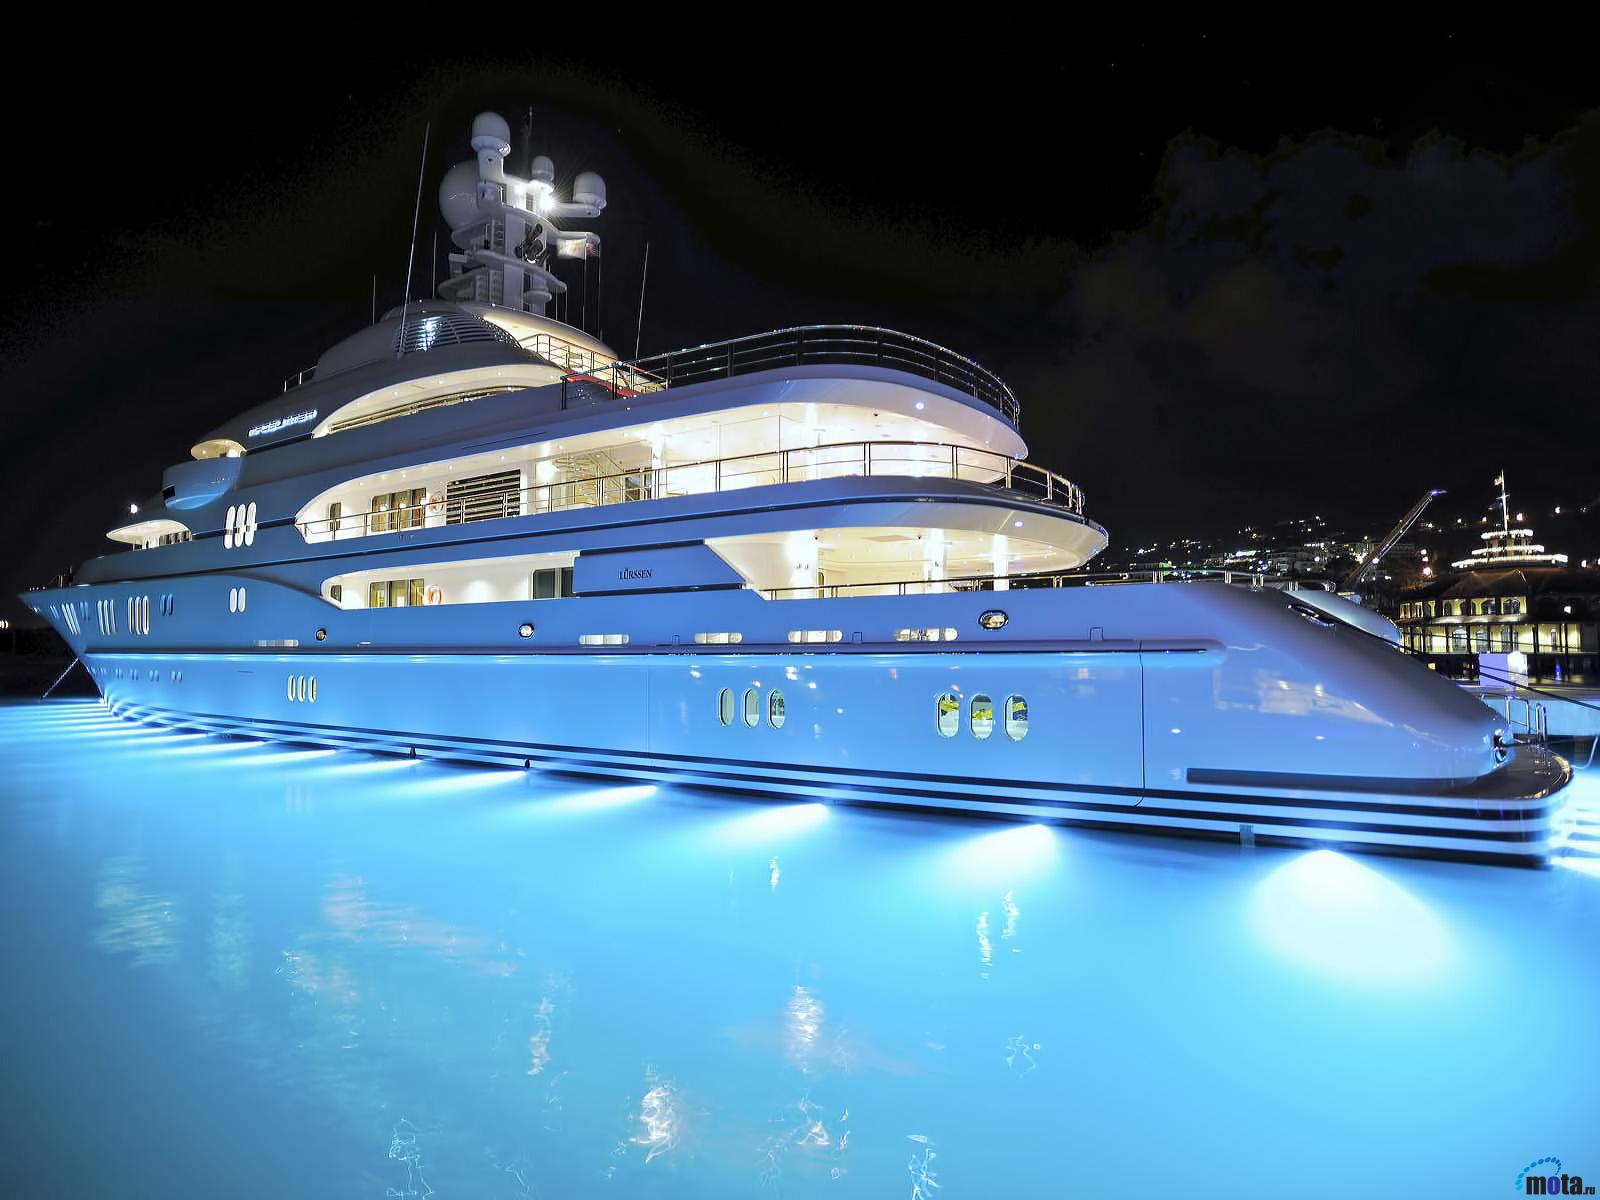 Yacht free Wallpapers  for your desktop, download pictures 1600x1200